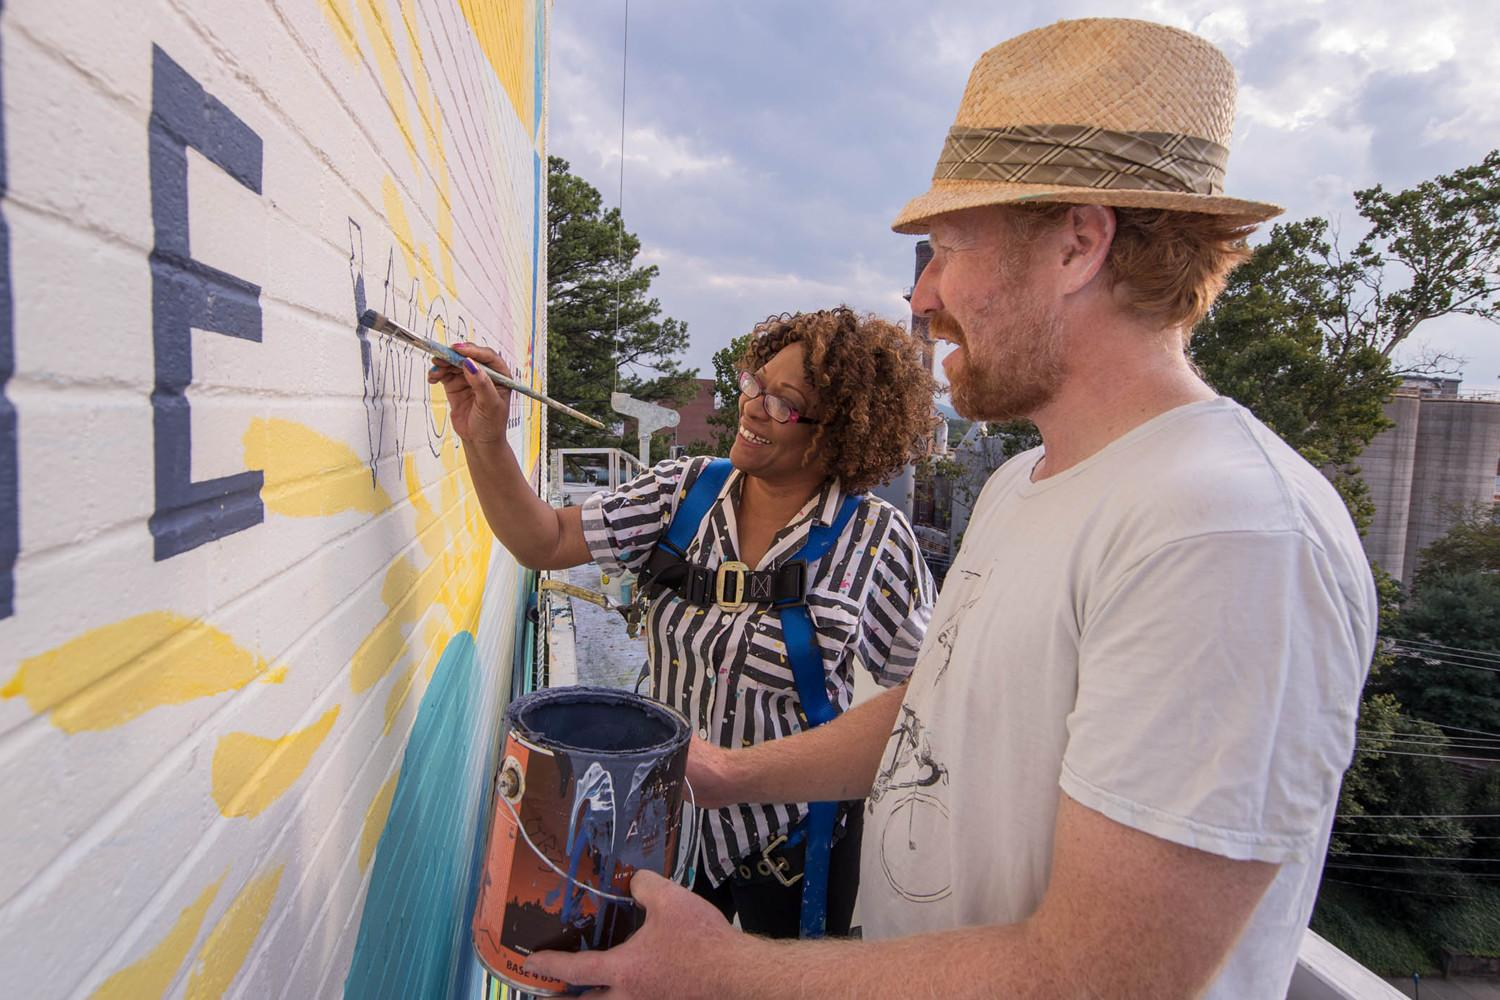 Muralist David Guinn and UVA English professor and renowned poet Rita Dove put the finishing touches on a new mural featuring Dove's poetry. (Photo by Sanjay Suchak, University Communications)